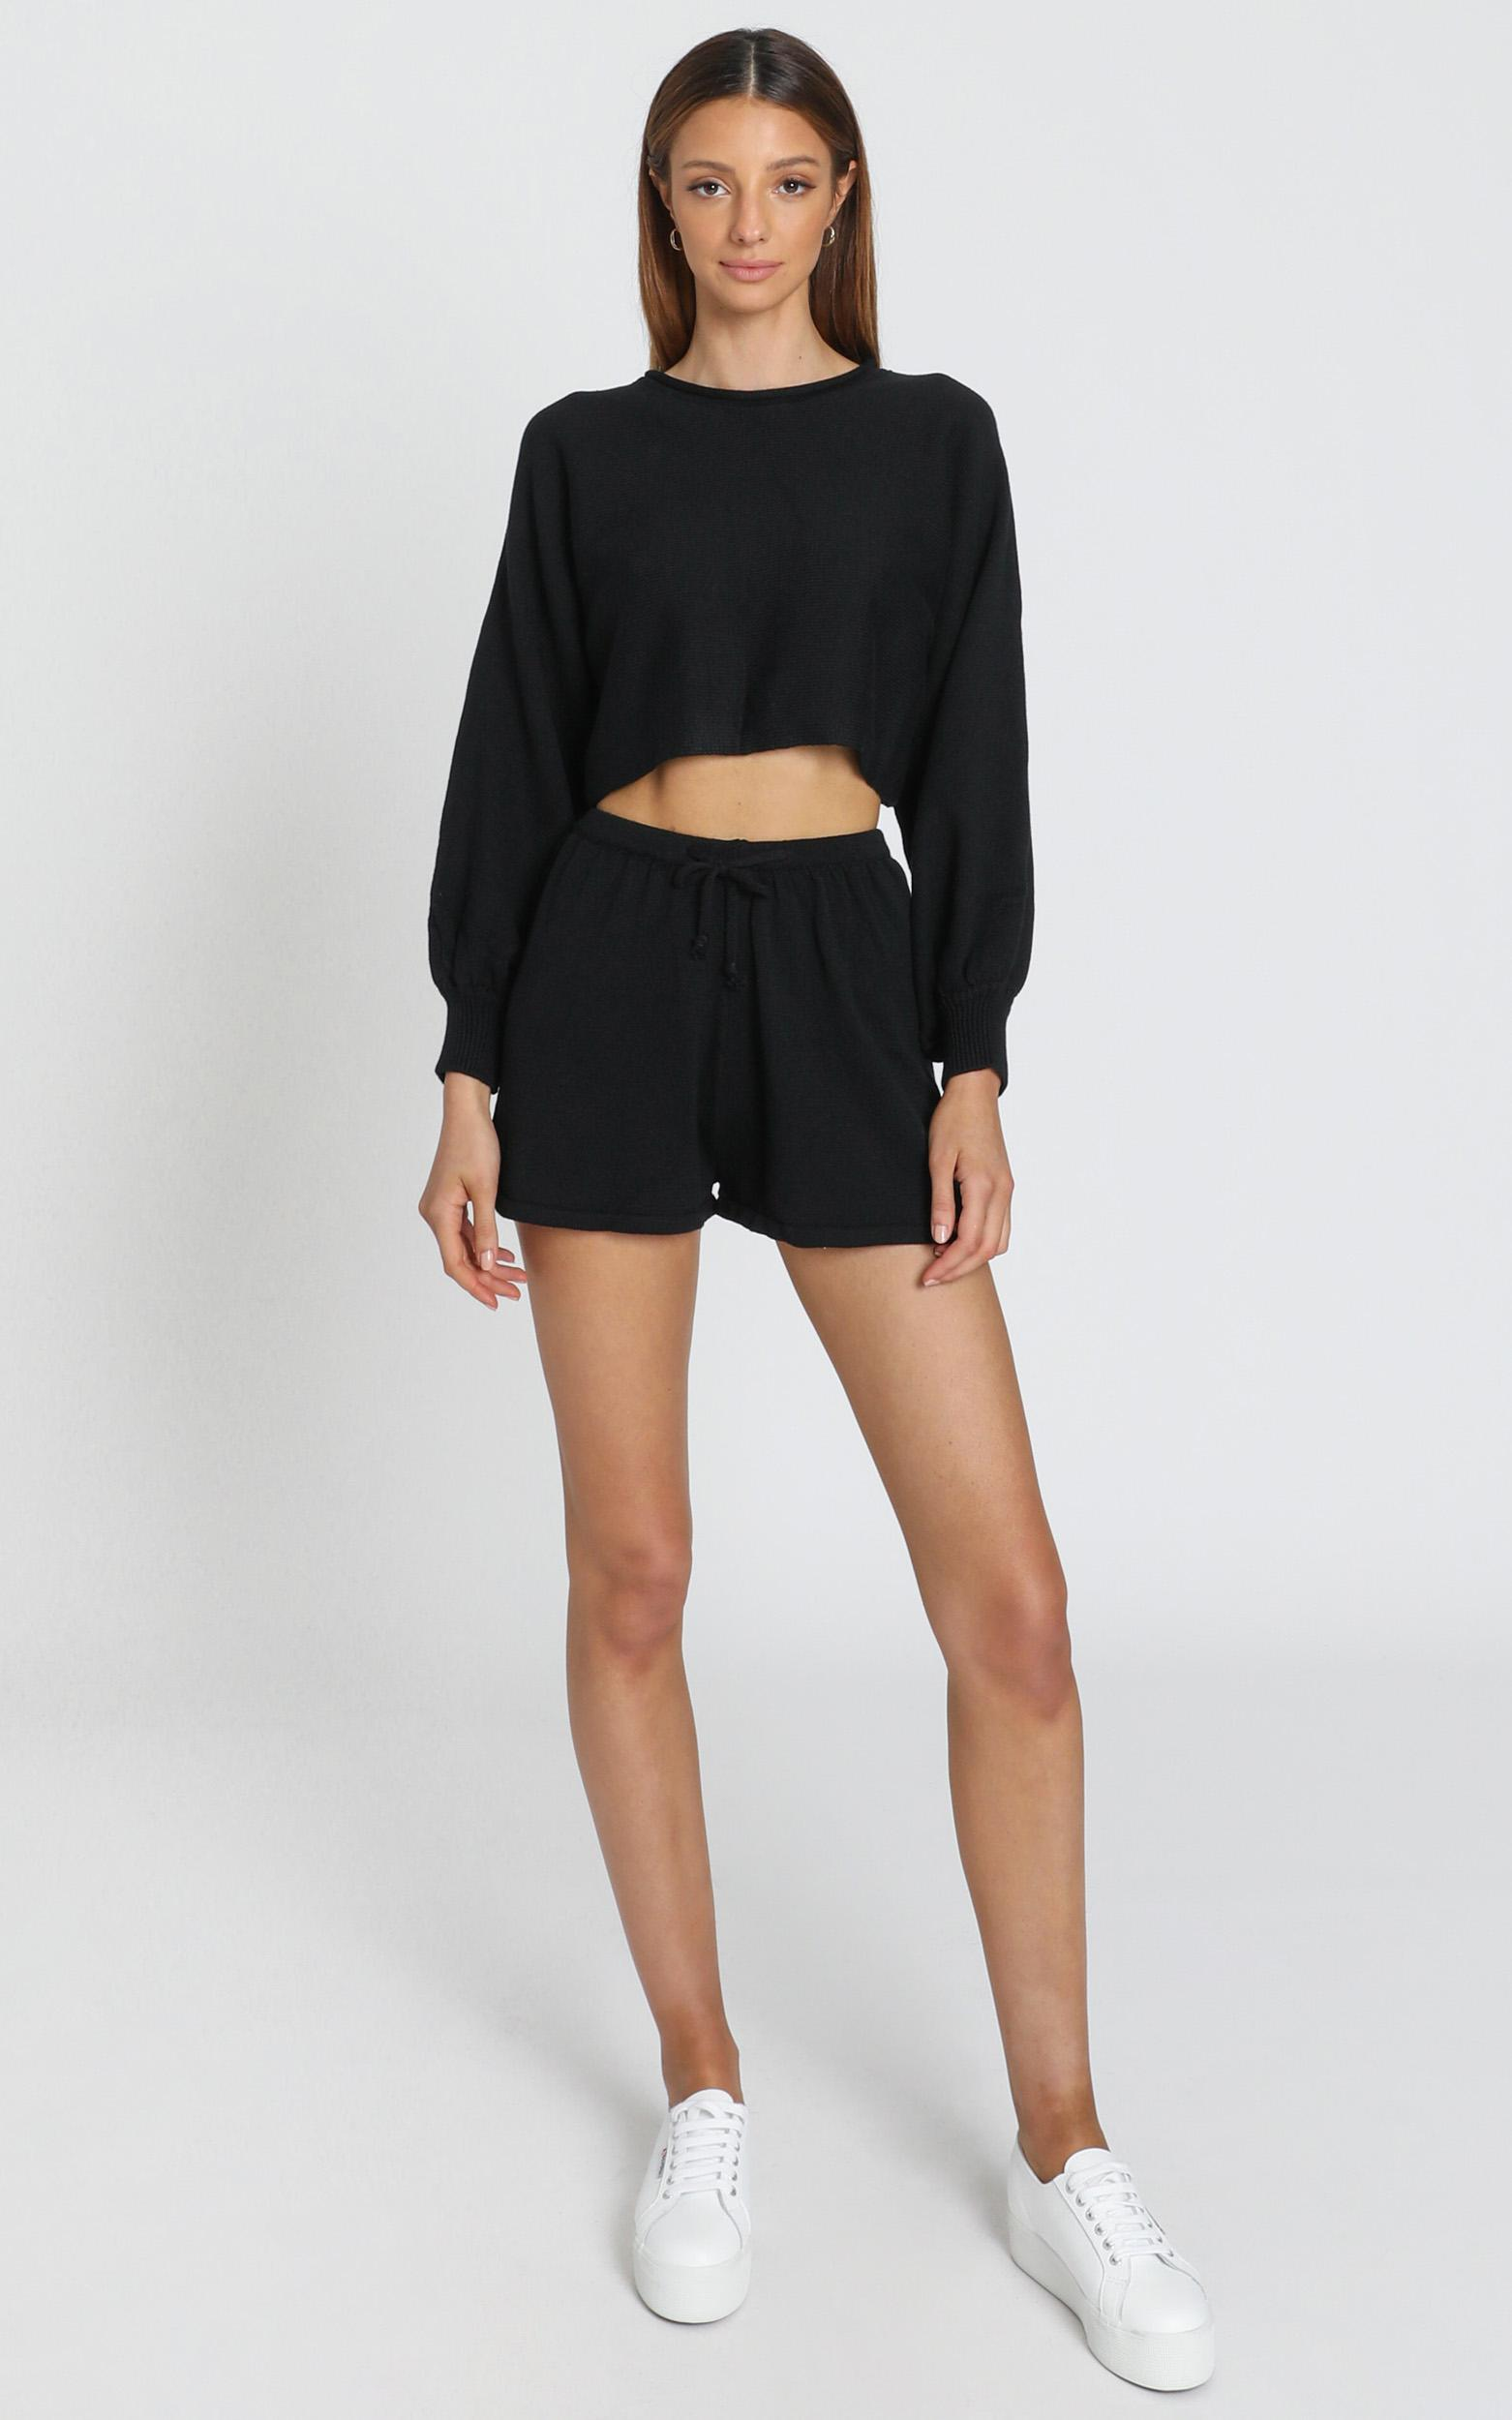 Hartley Knitted Jumper In Black - 8 (S), Black, hi-res image number null